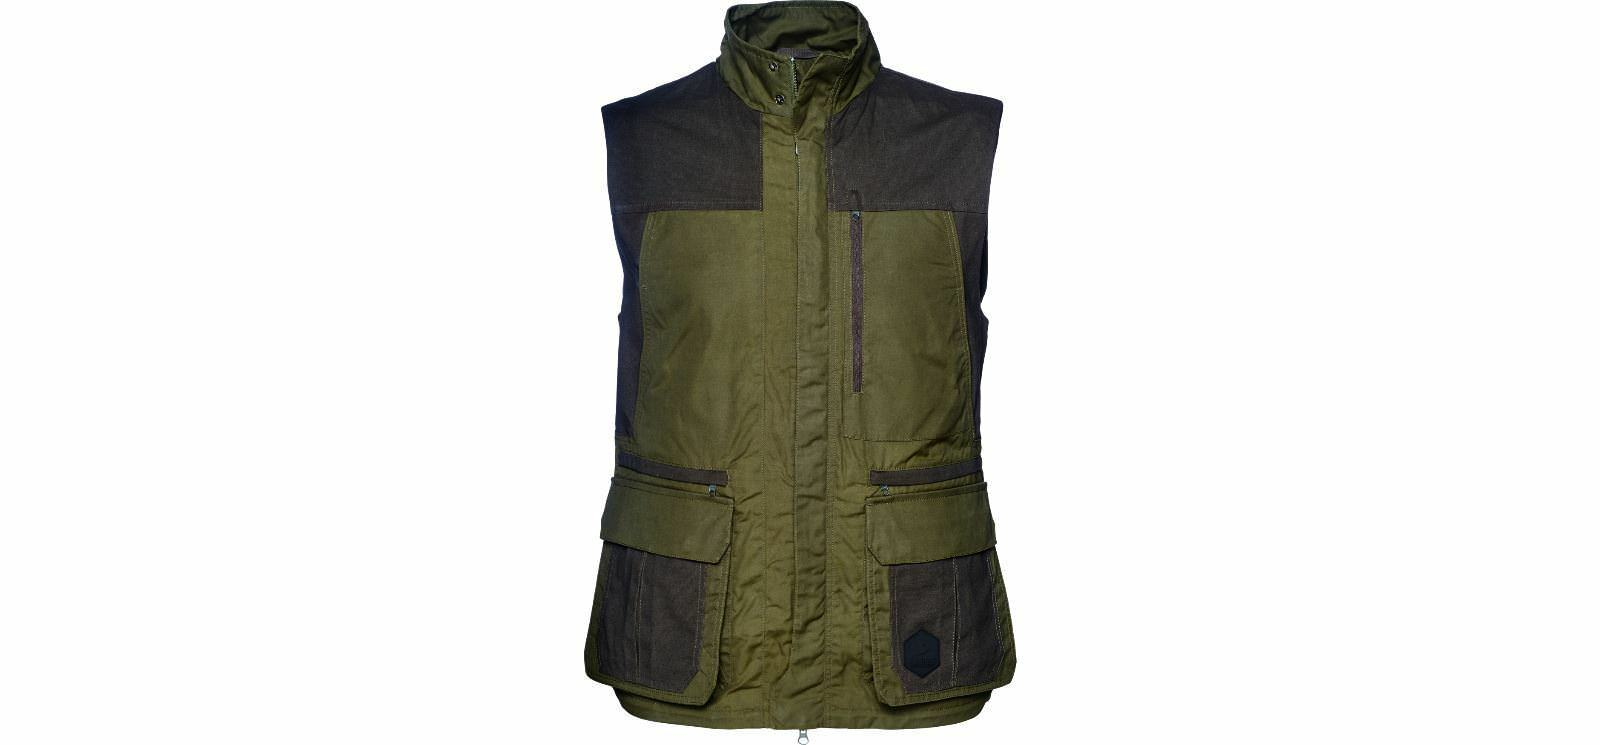 Seeland Key Point Waistcoat Gilet Country Hunting Shooting